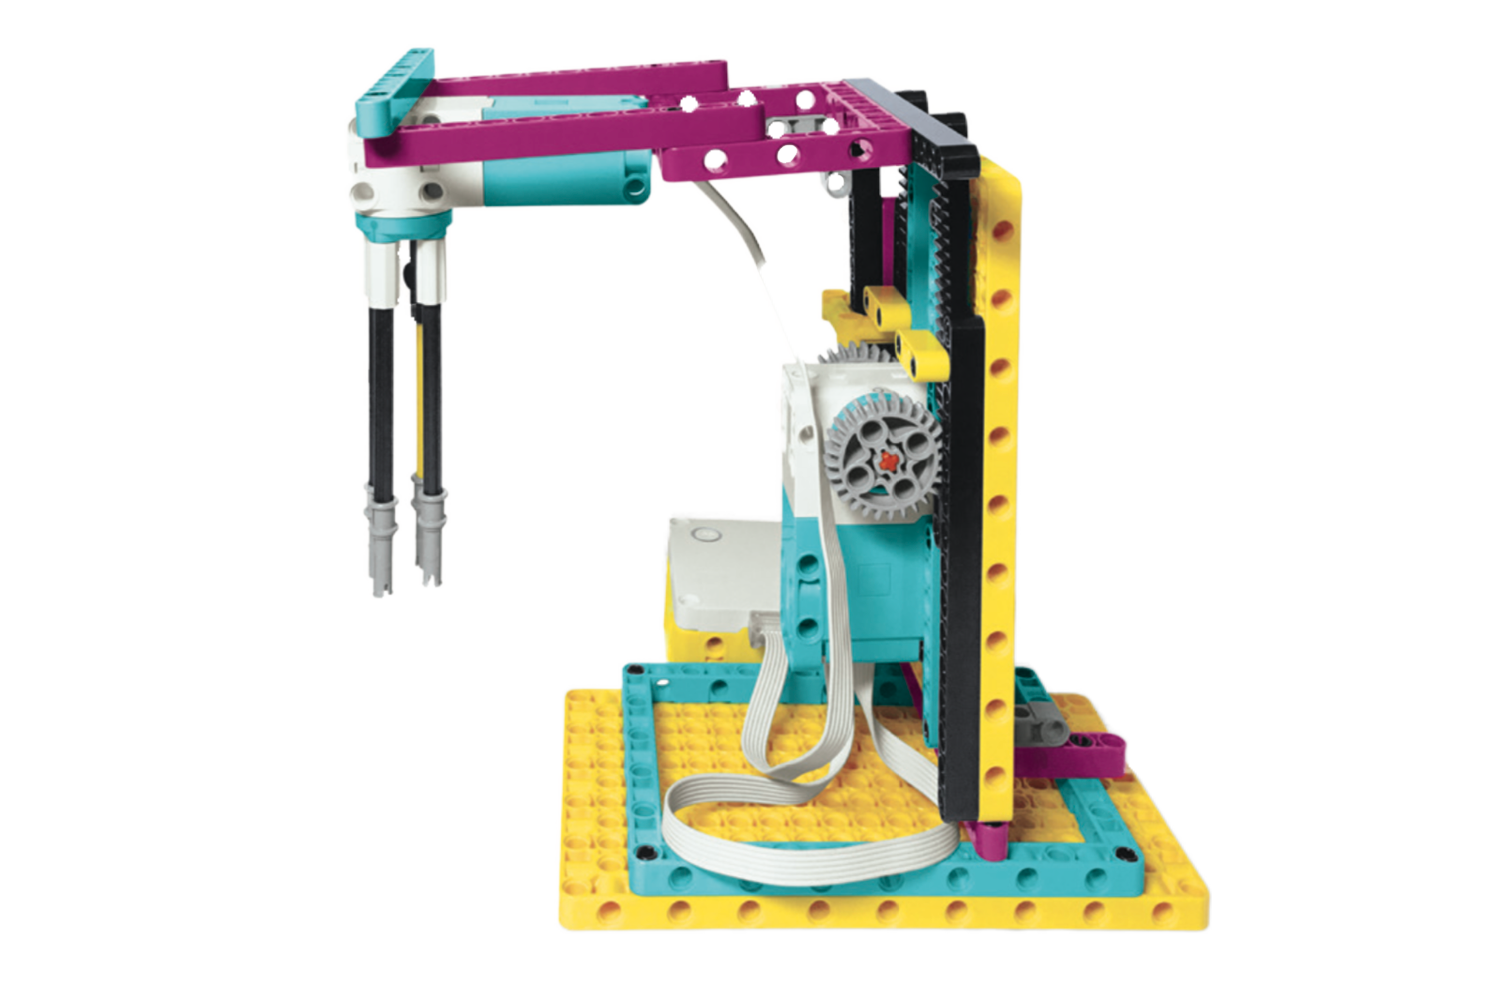 LEGO Education SPIKE Prime Unscrews Nuts From a Bolt model